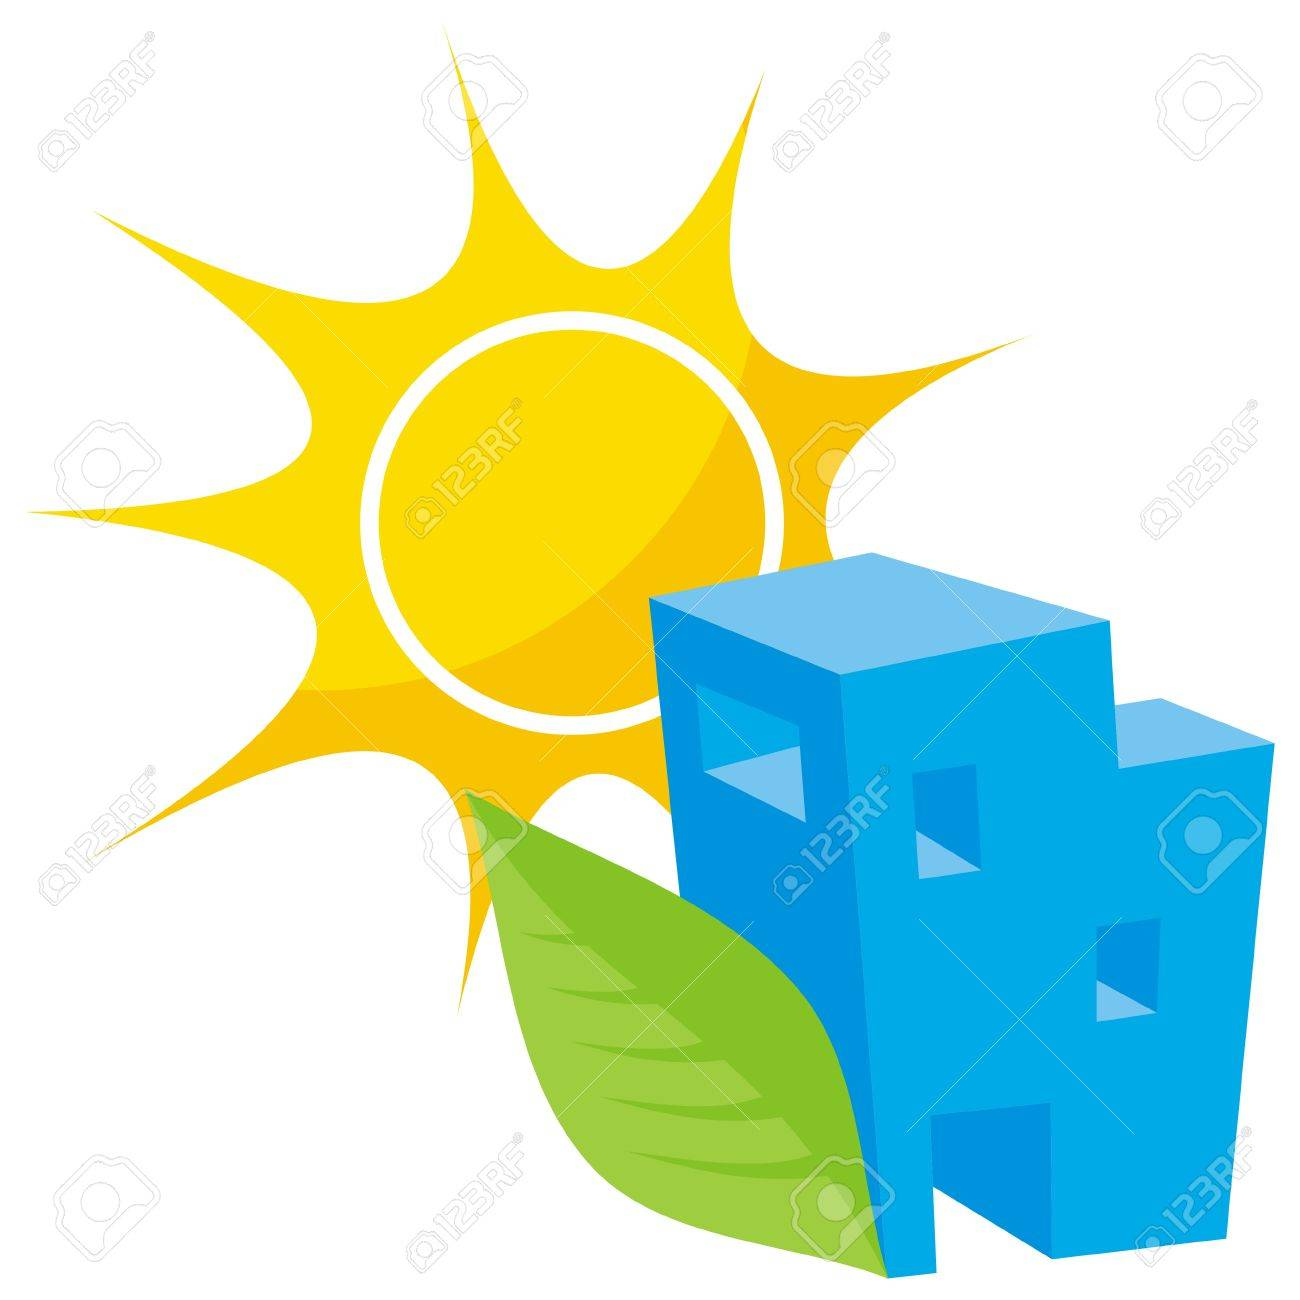 Greener home icon with blue building leaf and sun - 5776844